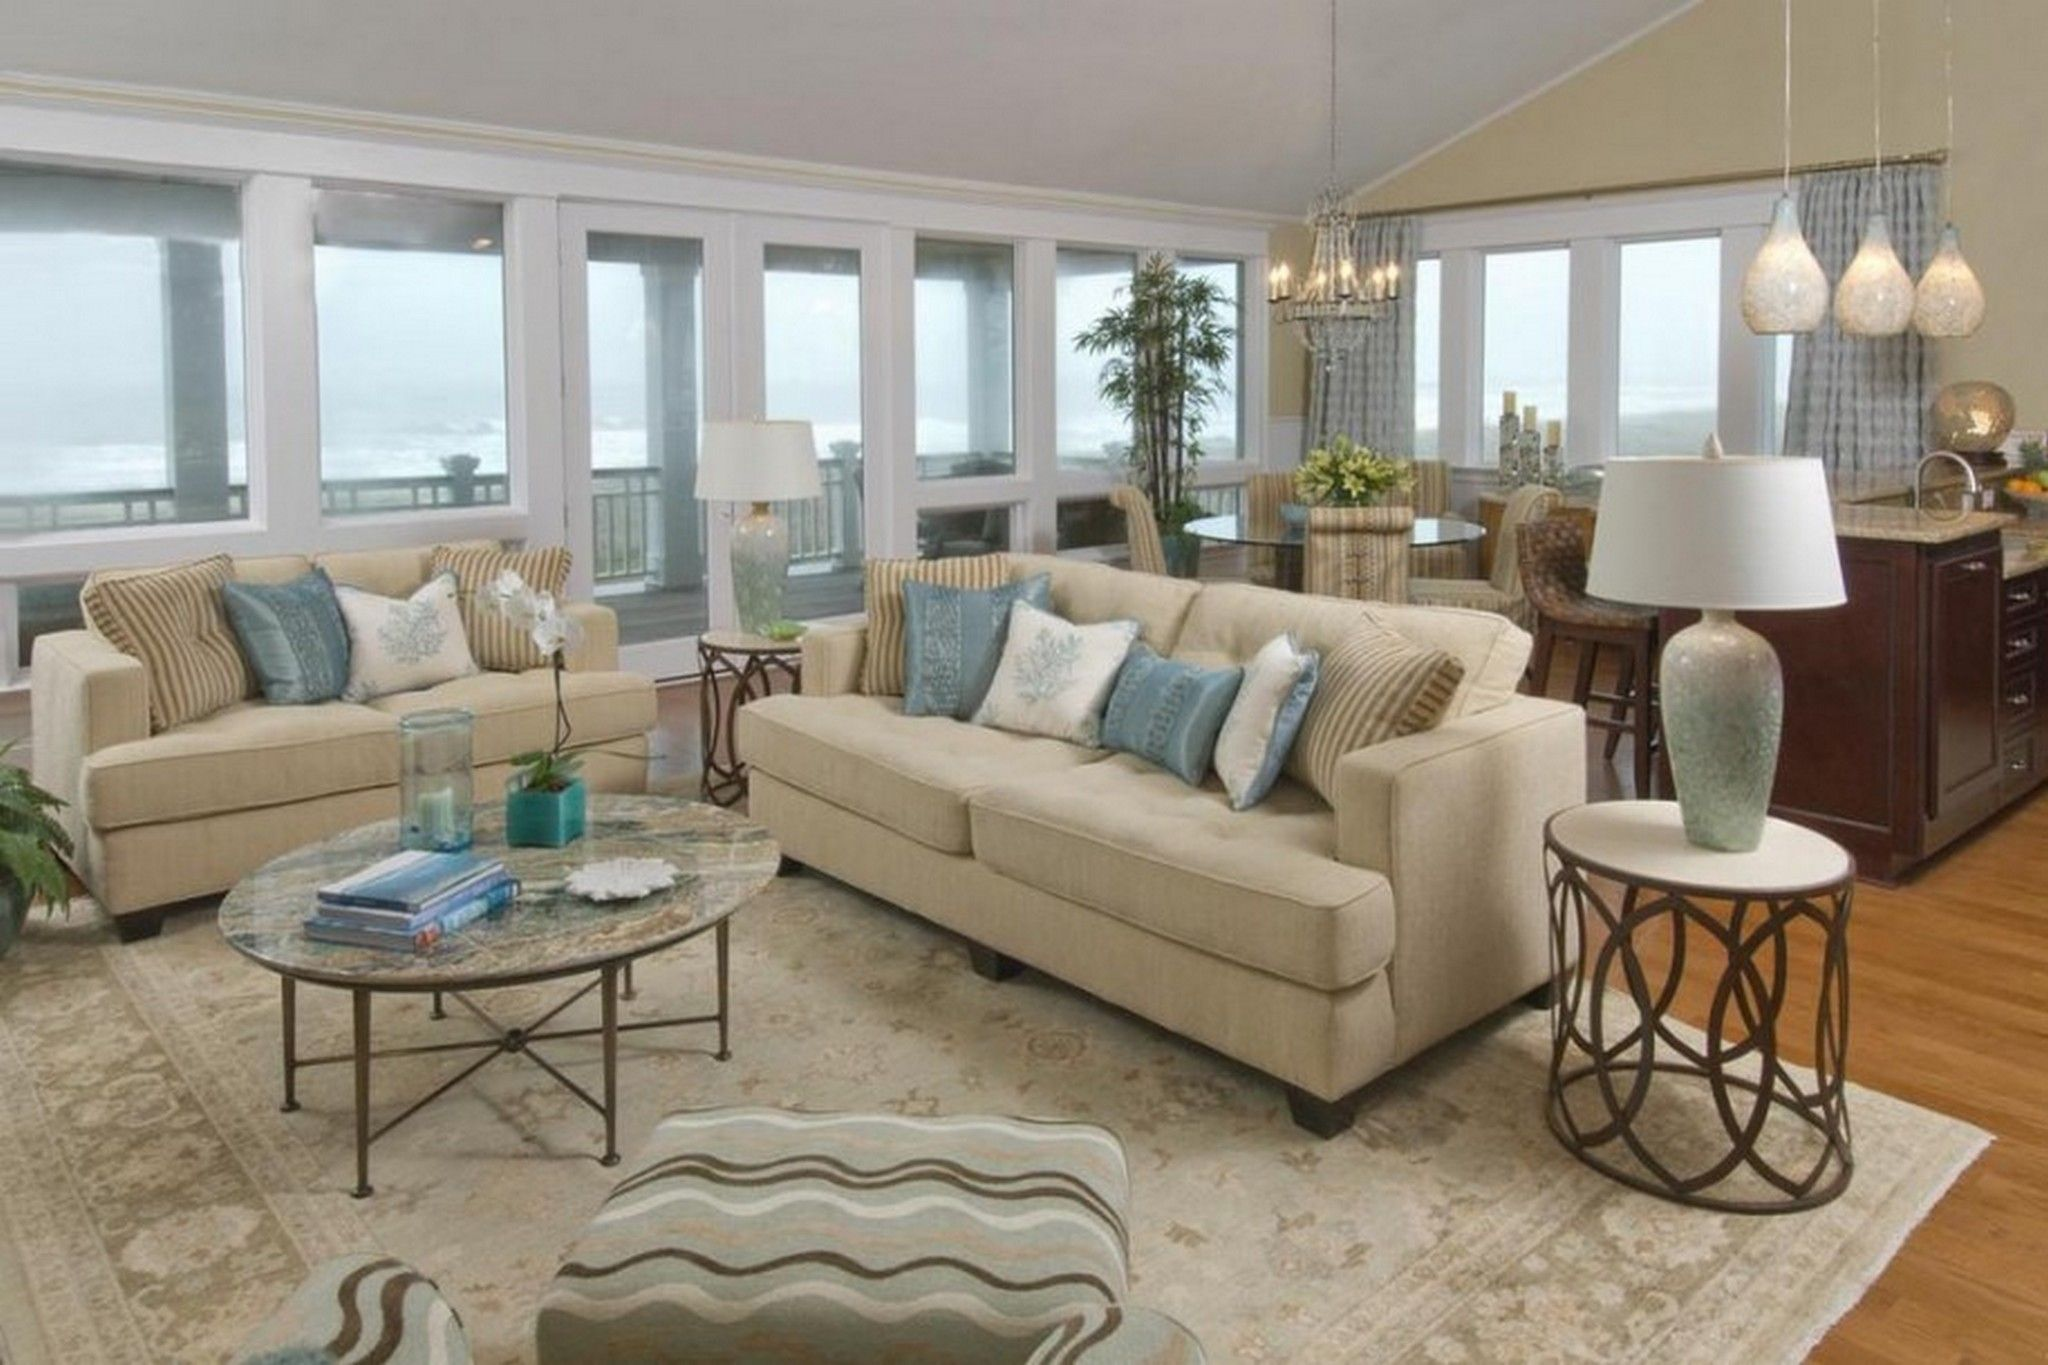 Beach Themed Living Room Design Adorable Beach Decor For The Living Room  Beach House Interiors Decorating Inspiration